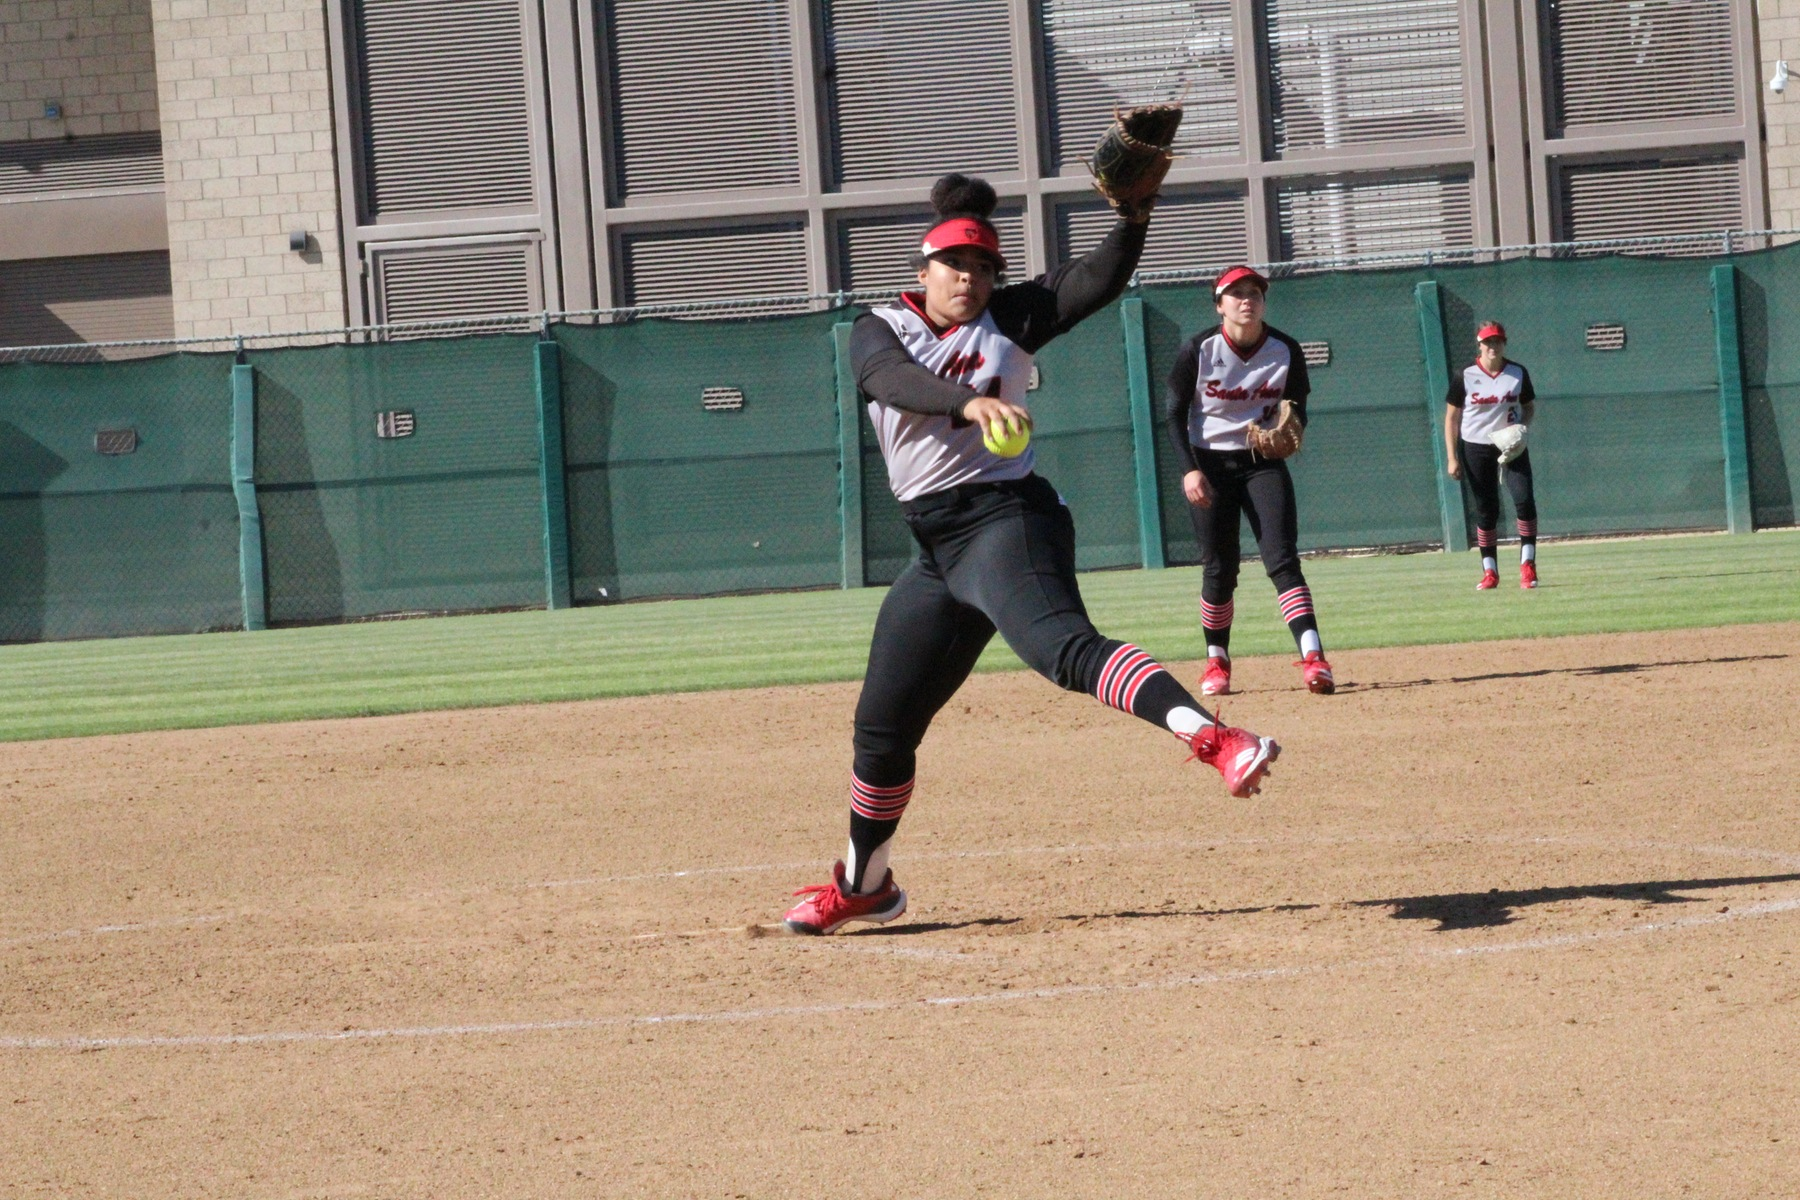 Dons Win by Run Rule in Non-Conference Game Against Grossmont